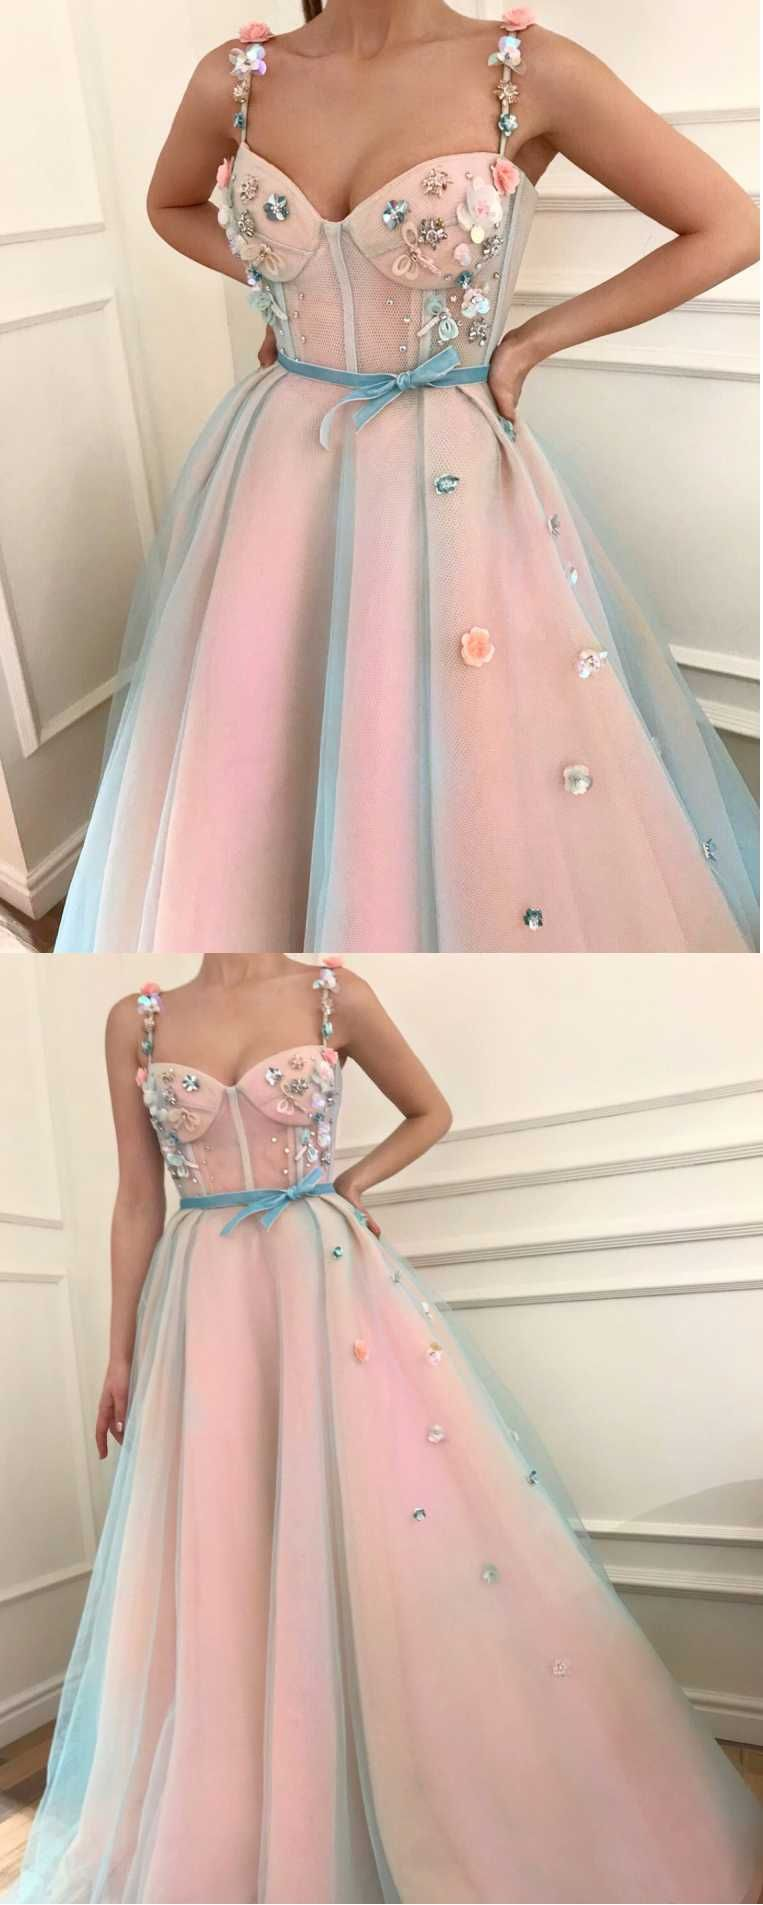 2018 Hot Sale Long Evening Dress,A-Line Prom Dresses,Sexy evening ...